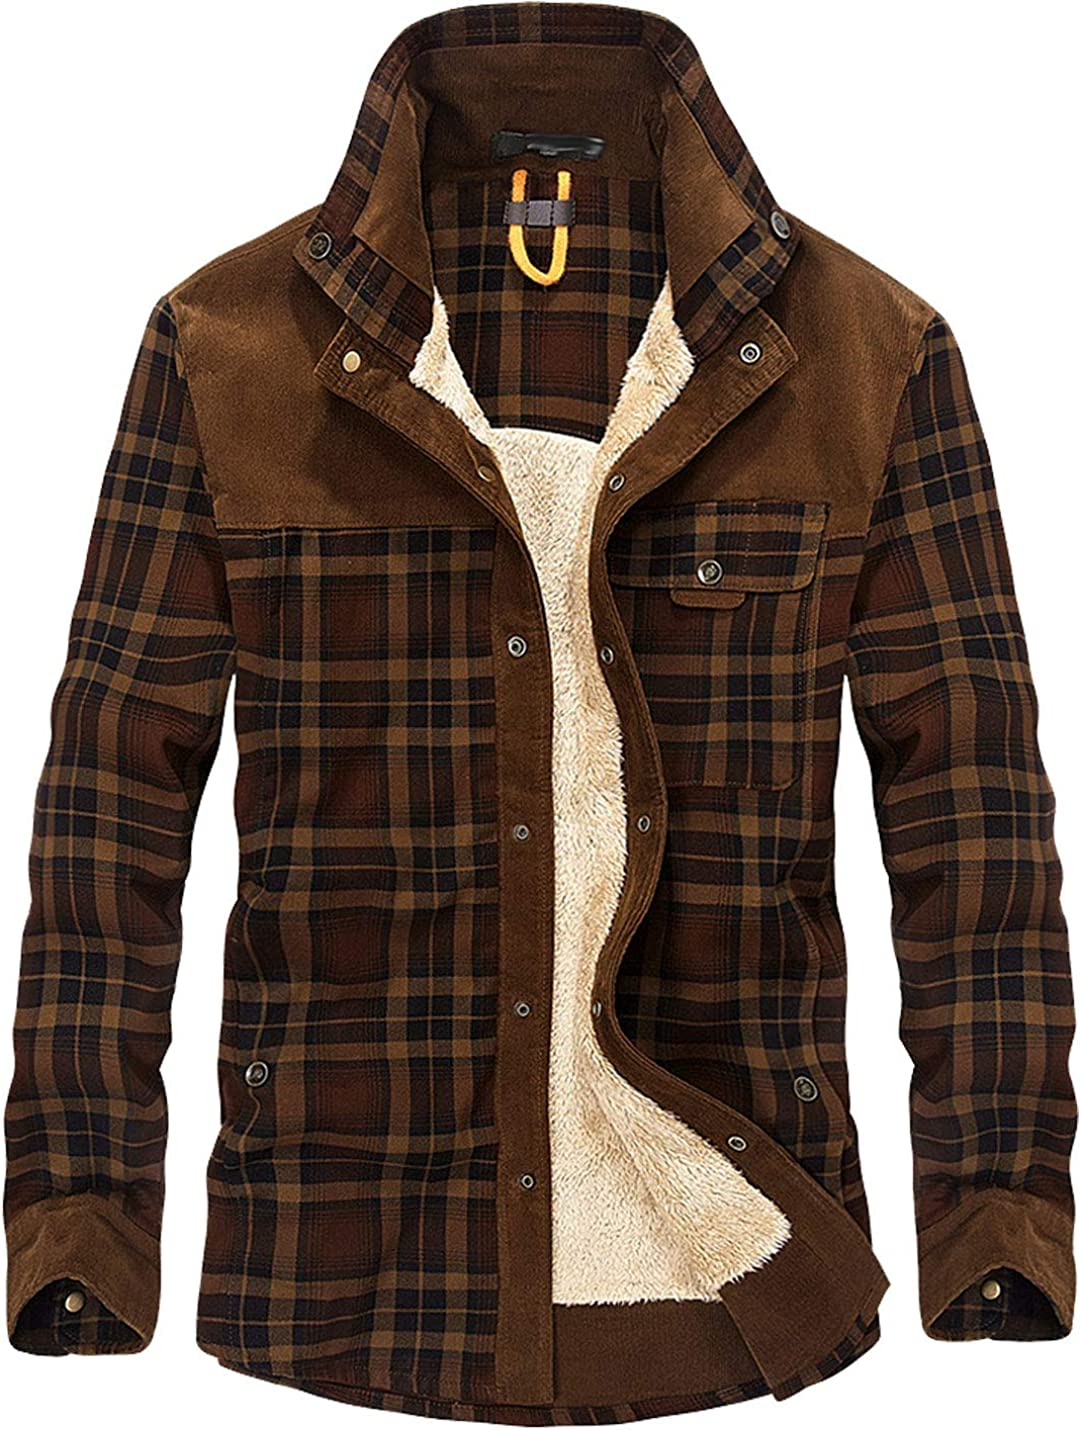 Flygo free shipping Men's Casual Outlet SALE Outdoor Rugged Long Sleeve Sherpa Line Fleece